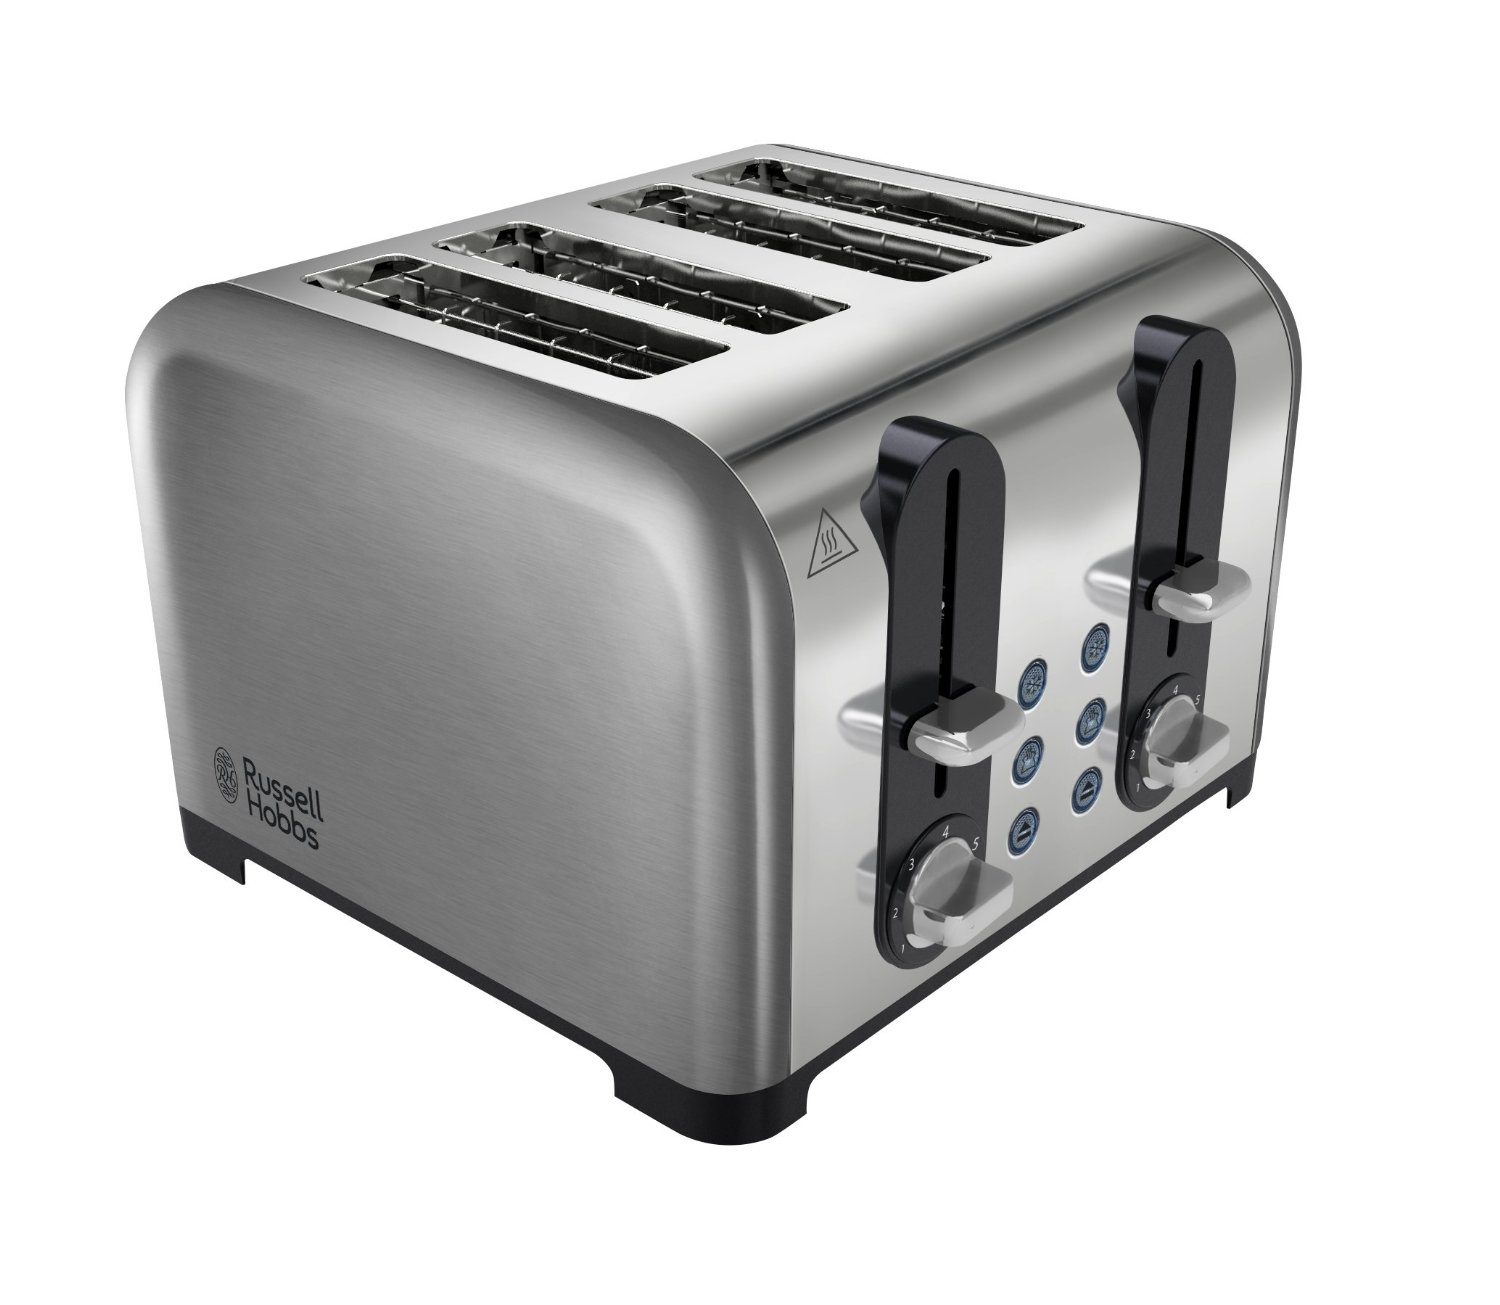 black dp breville toaster home kitchen amazon slot slice co uk